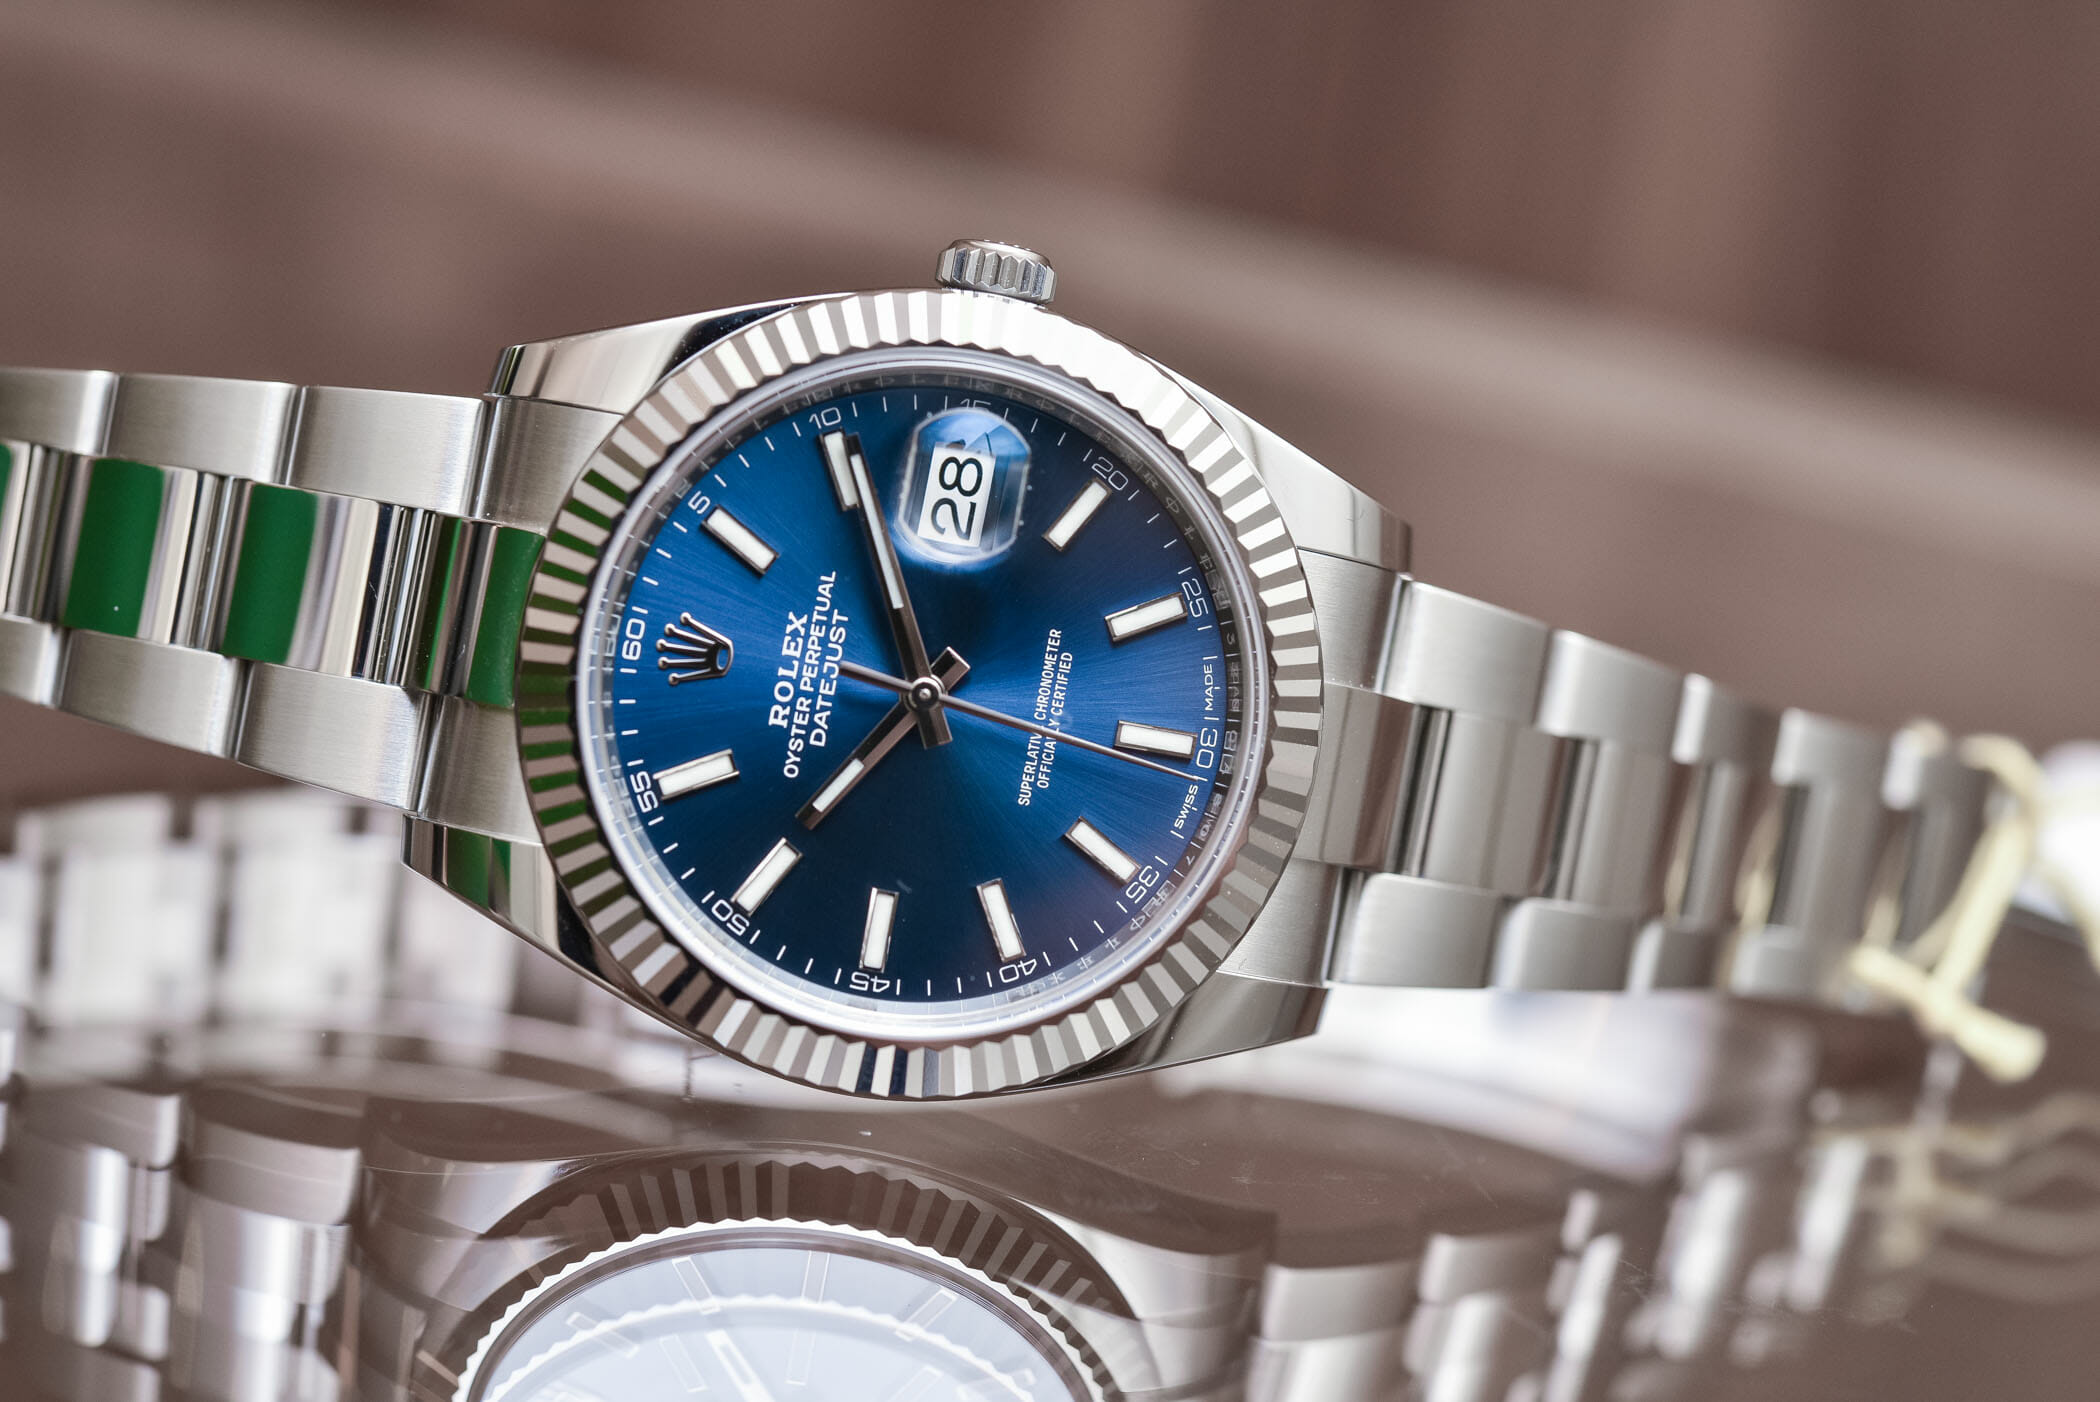 Replacement Bracelets for the Rolex Datejust 41